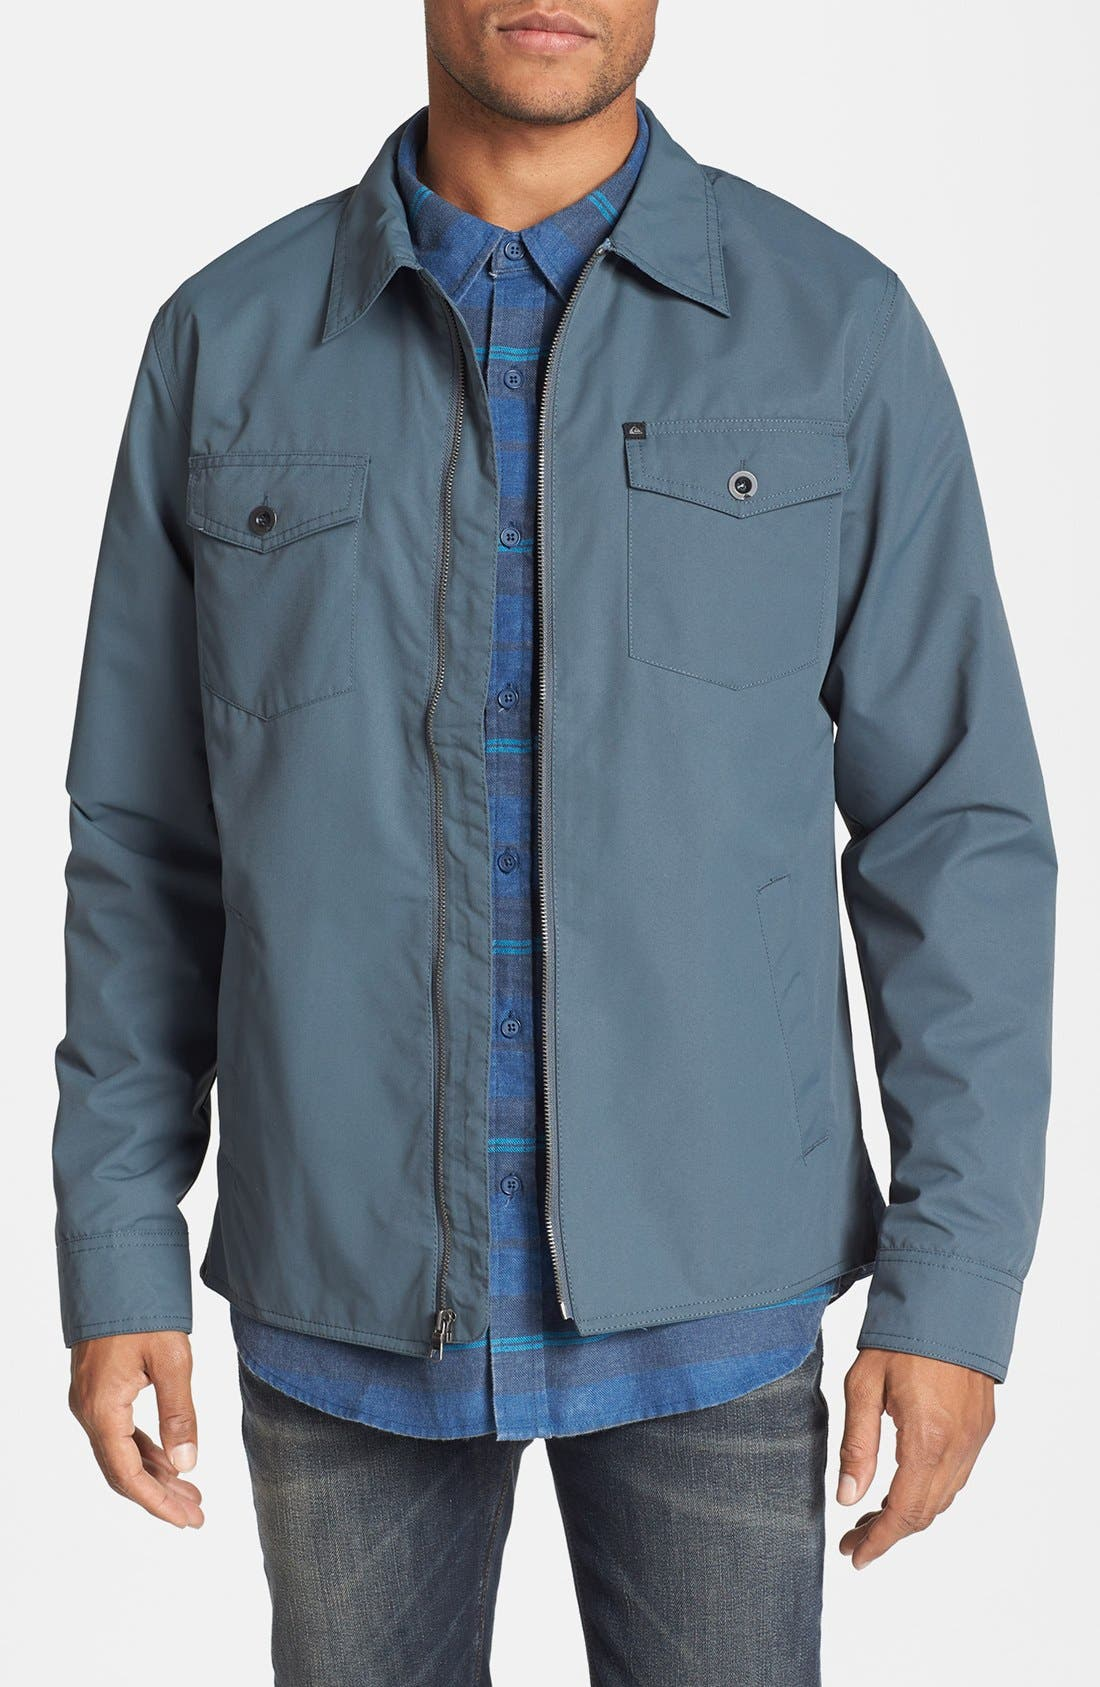 Alternate Image 1 Selected - Quiksilver 'Pit Stop' Jacket